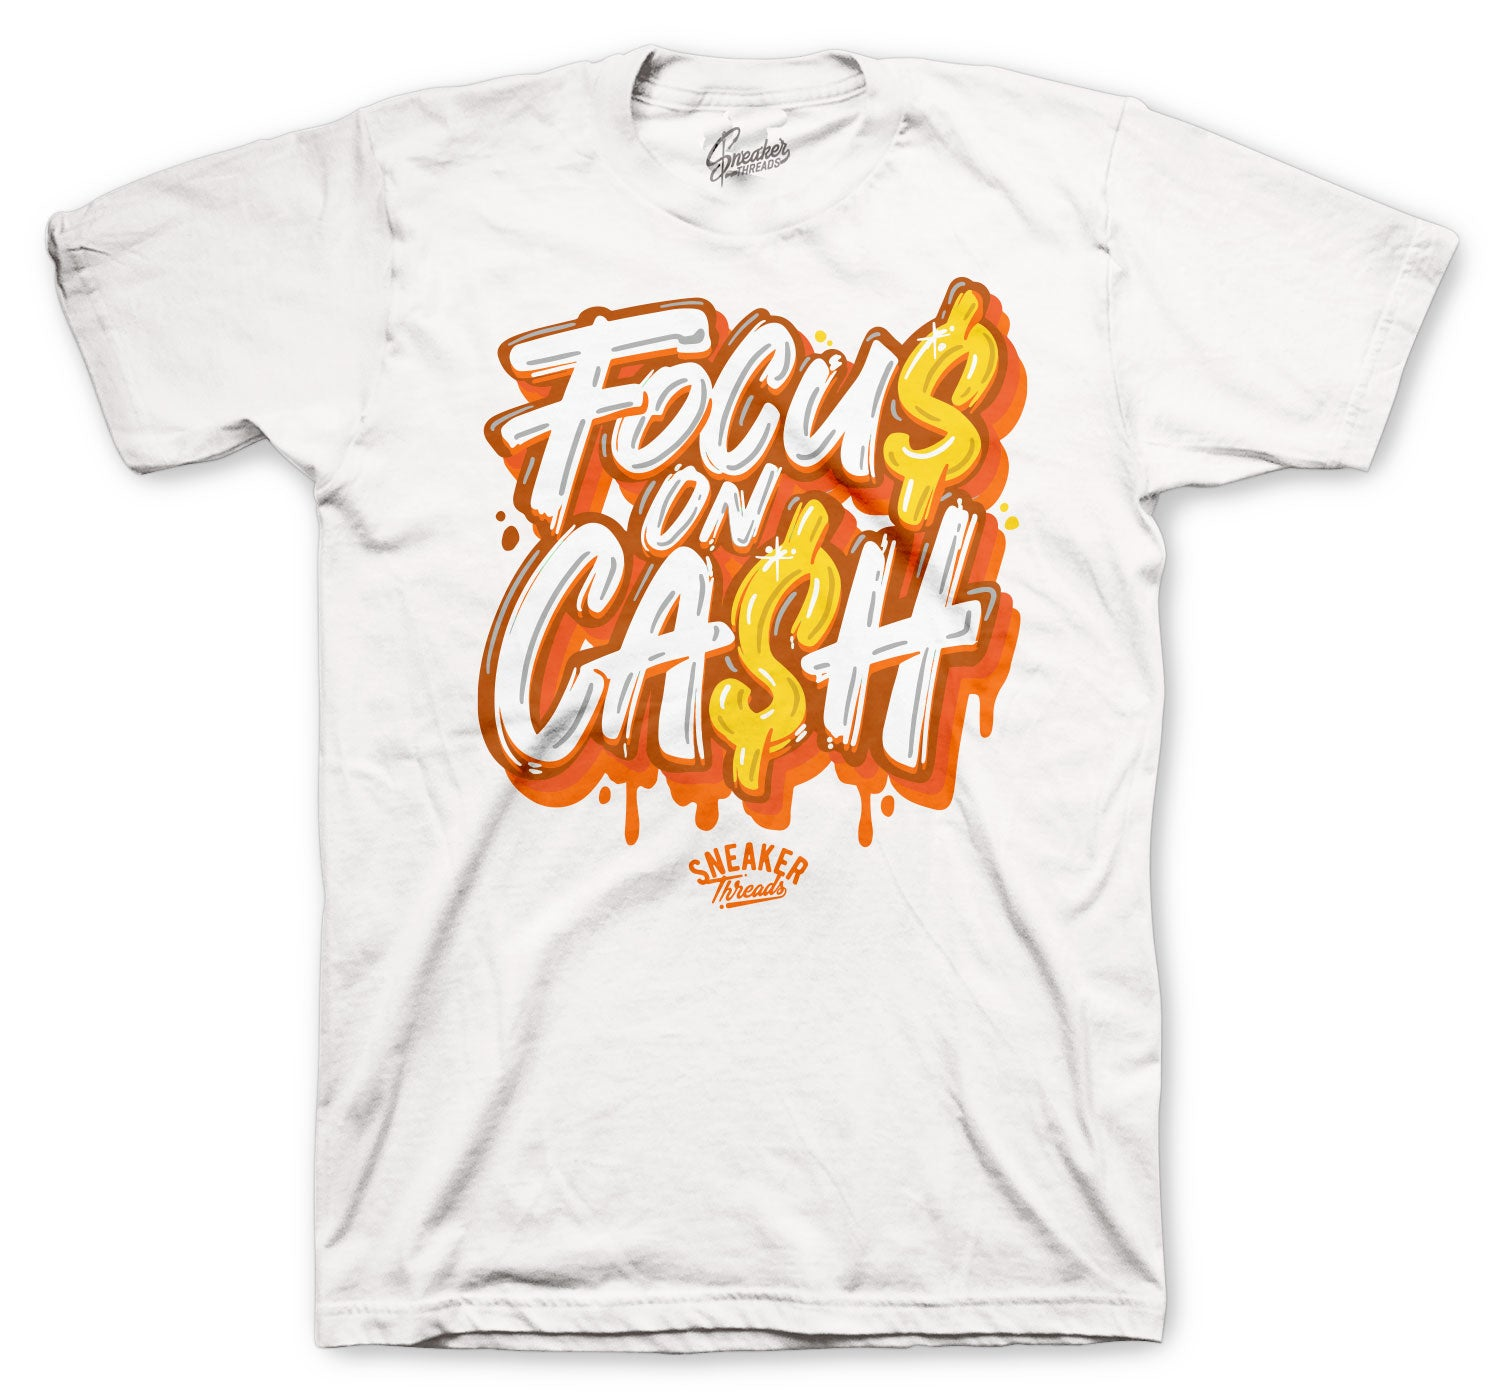 Jordan 4 Orange Metallic Shirt - Focus on $ - White